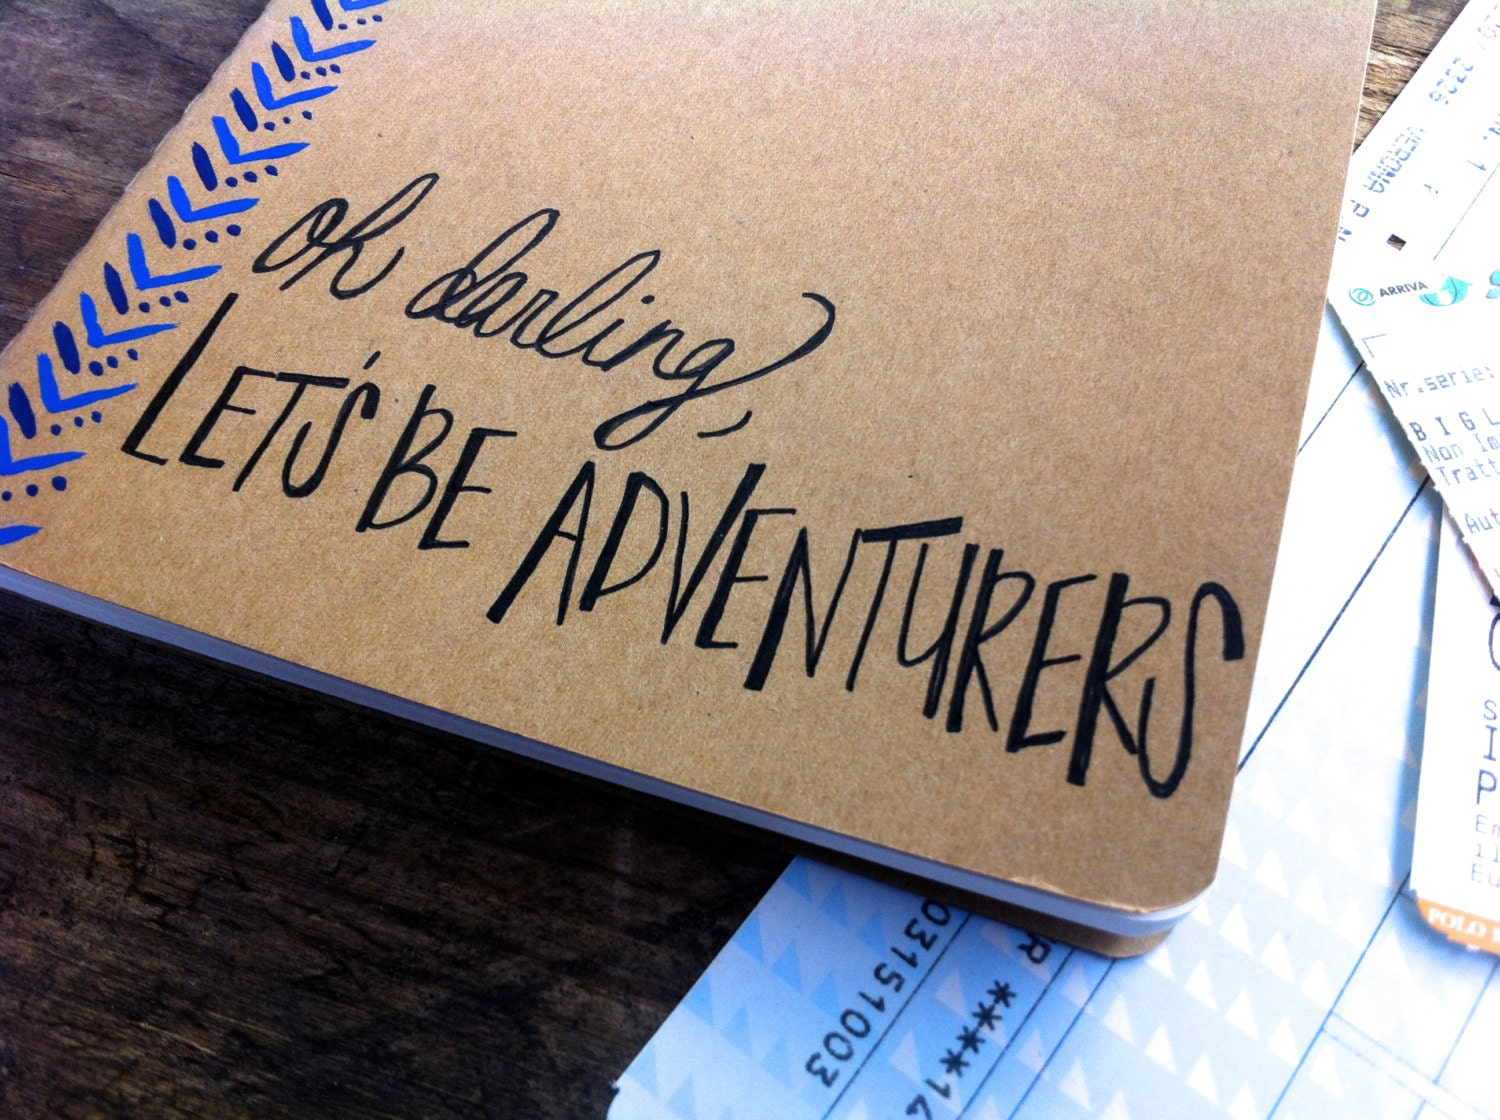 Travel Journal Oh Darling Let's Be Adventurers I Handwritten Calligraphy Monaco Blue Kraft Moleskin I Custom Notebook I Going Away Gift - DegnodiNota